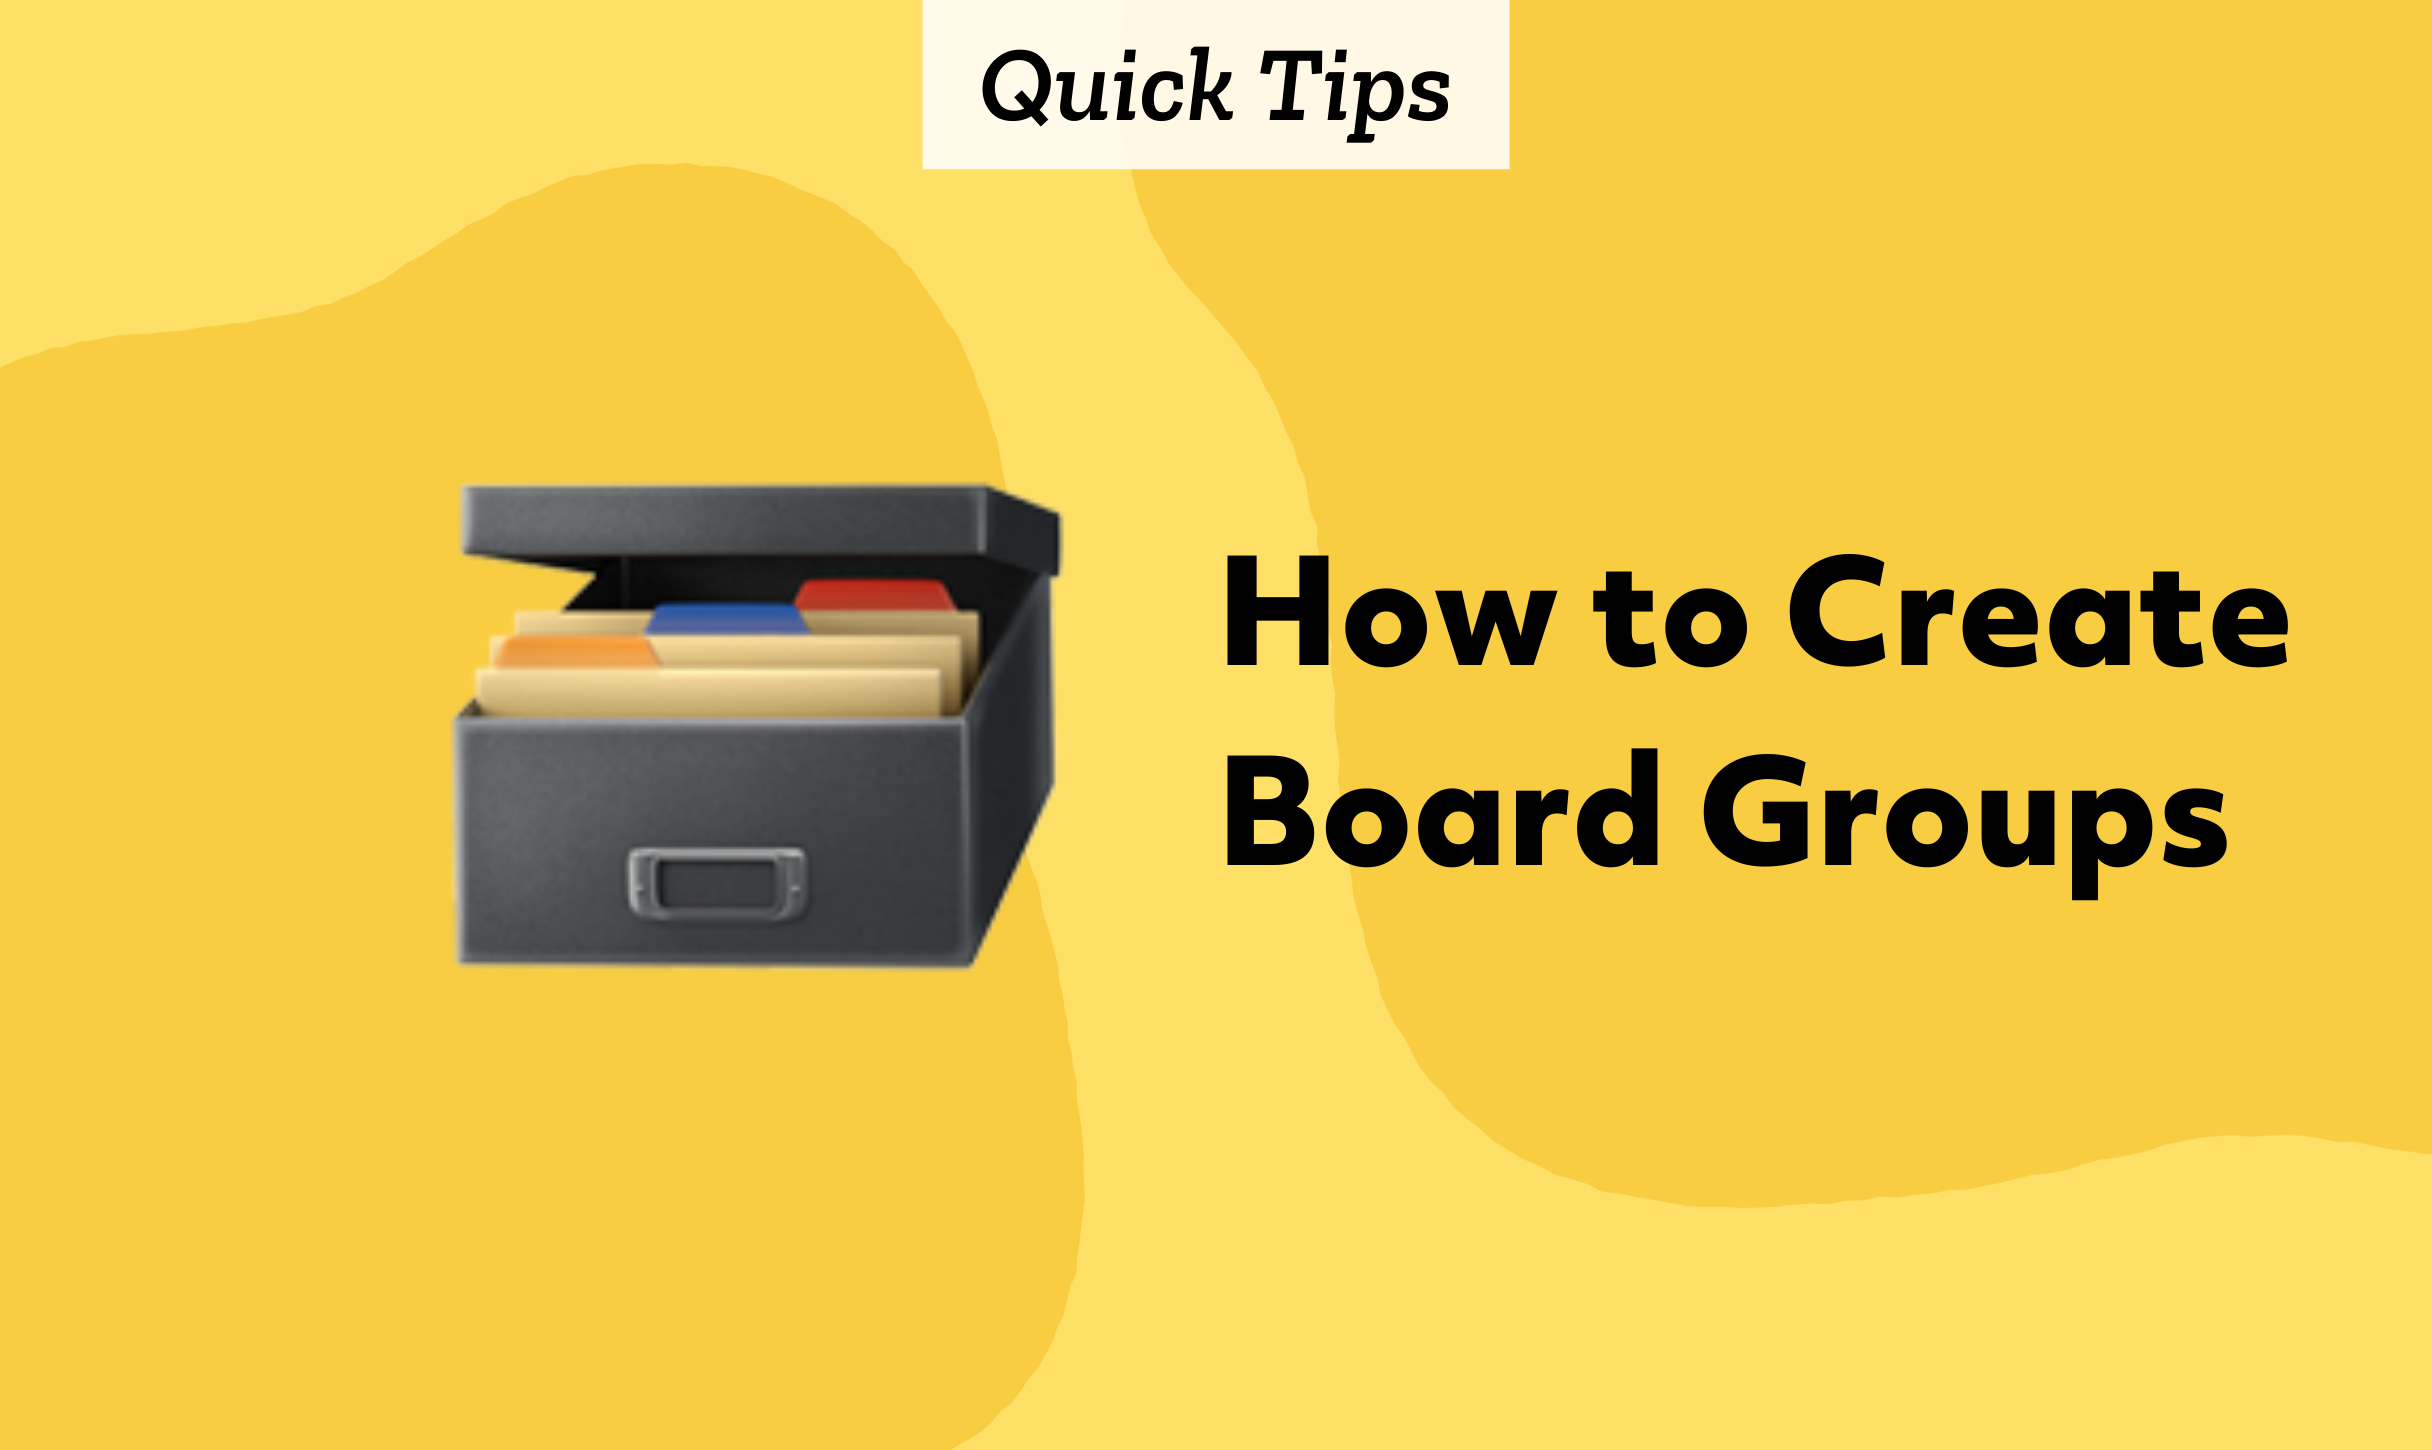 Quick Tips: How to Create Board Groups